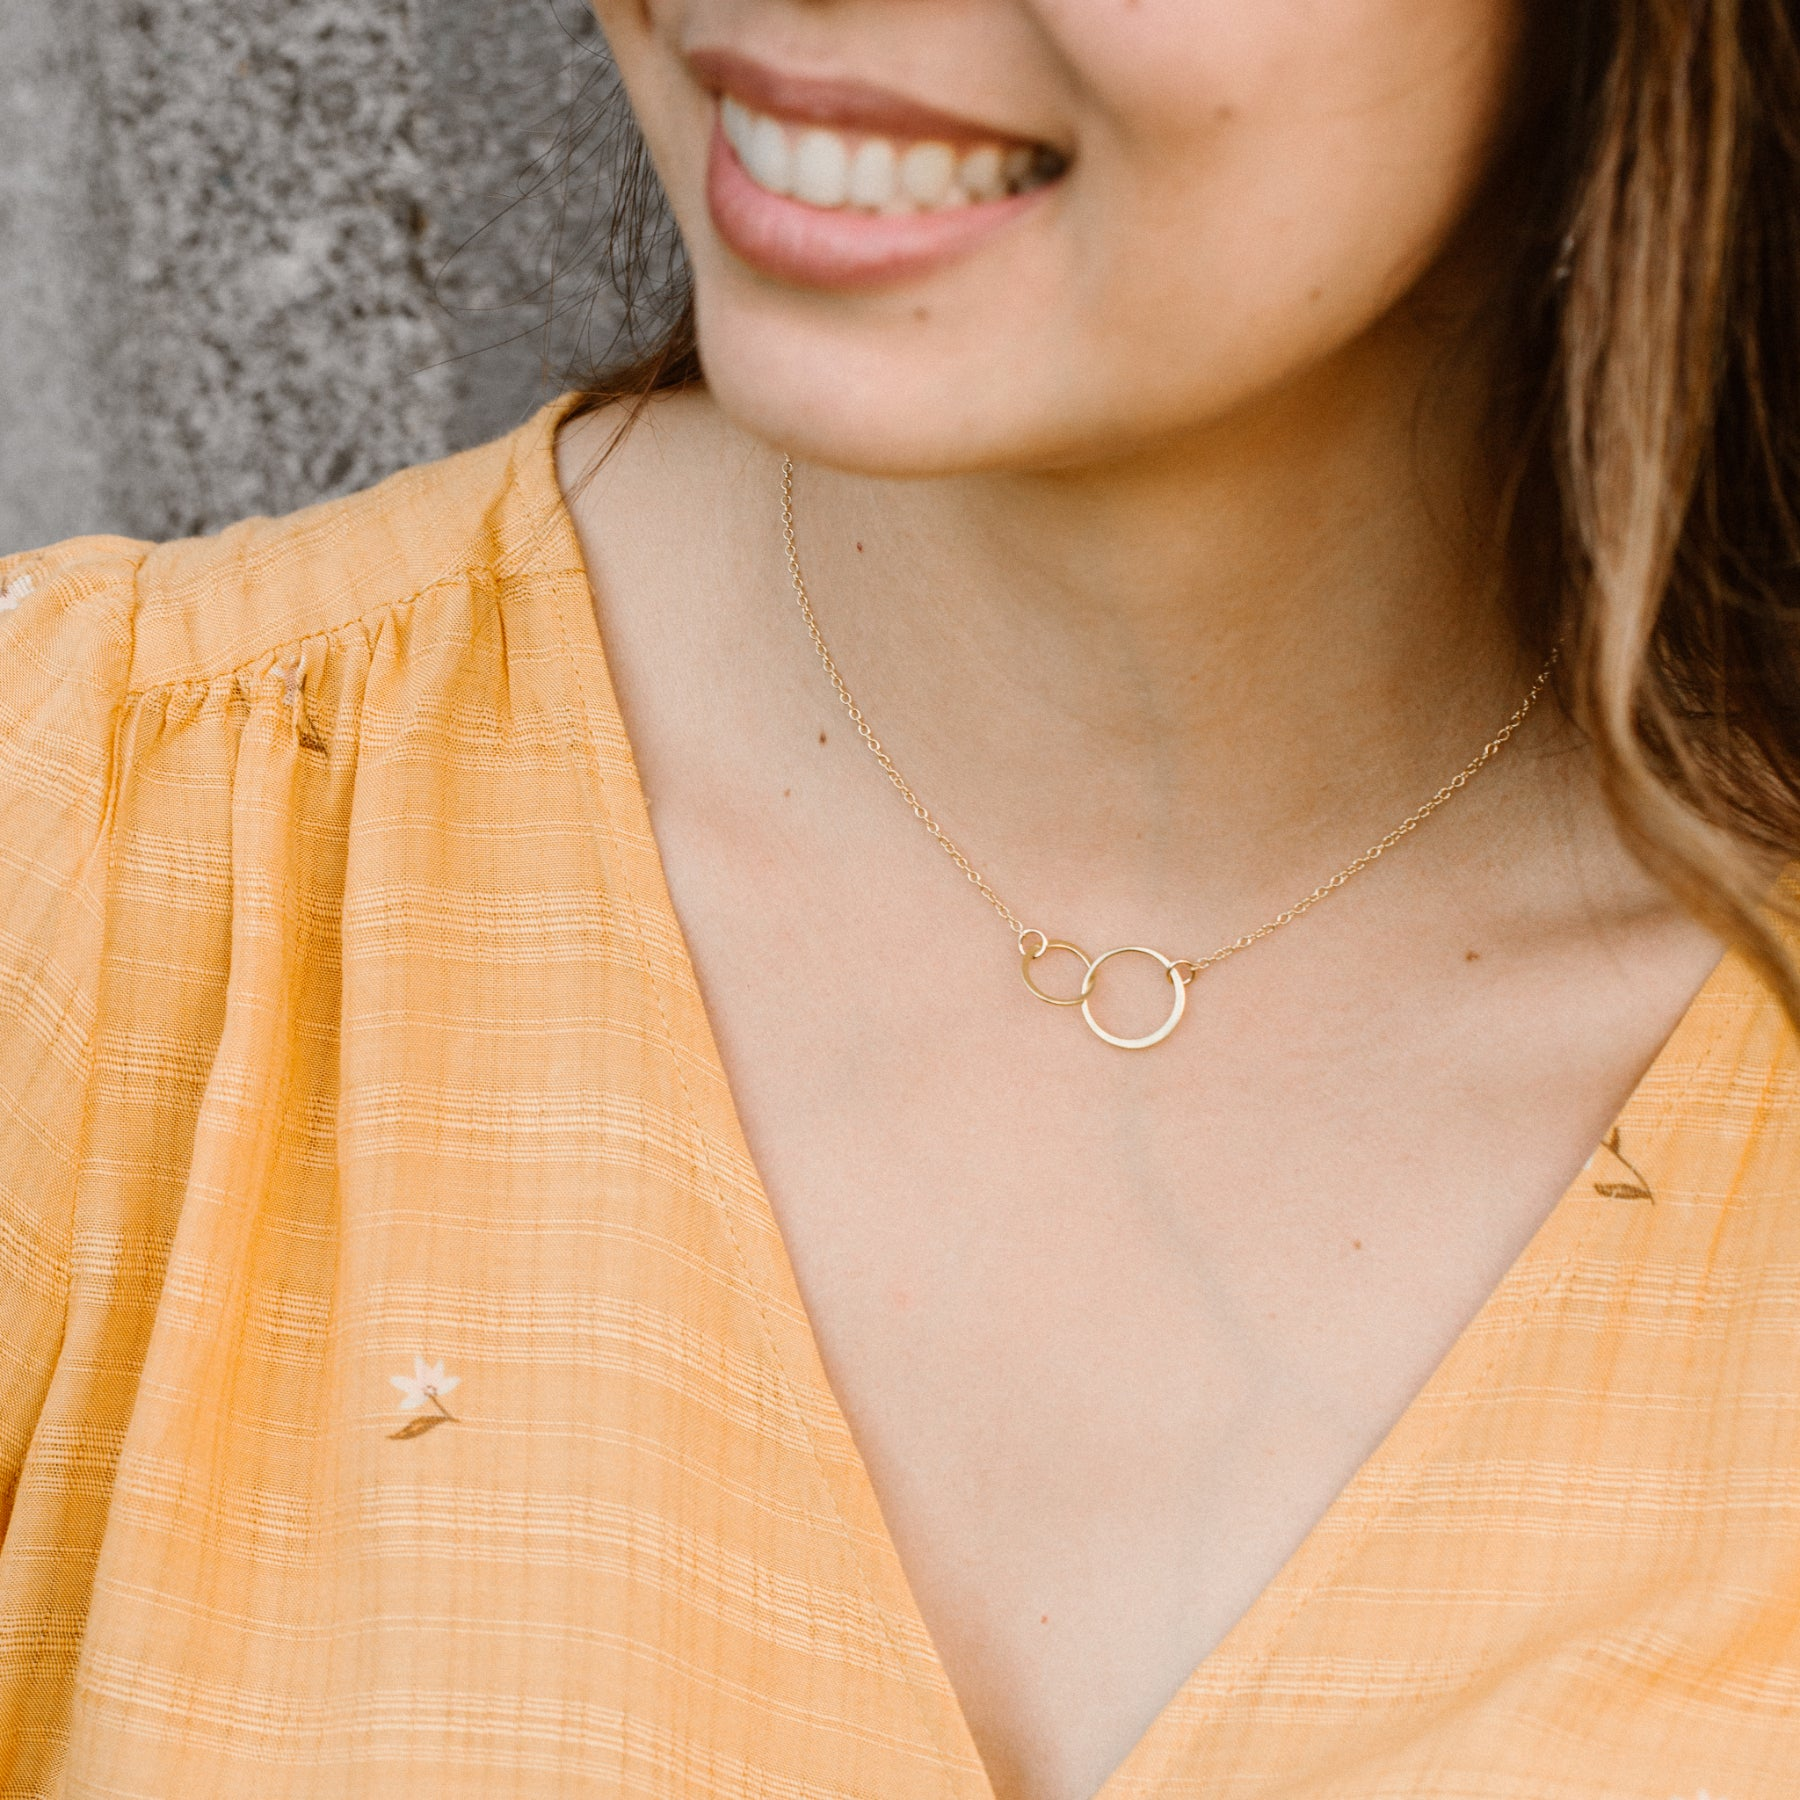 Woman in Orange Shirt Smiling and Wearing Gold Linked Circles Necklace 'We Are Connected' Model Photo by Asha Blooms